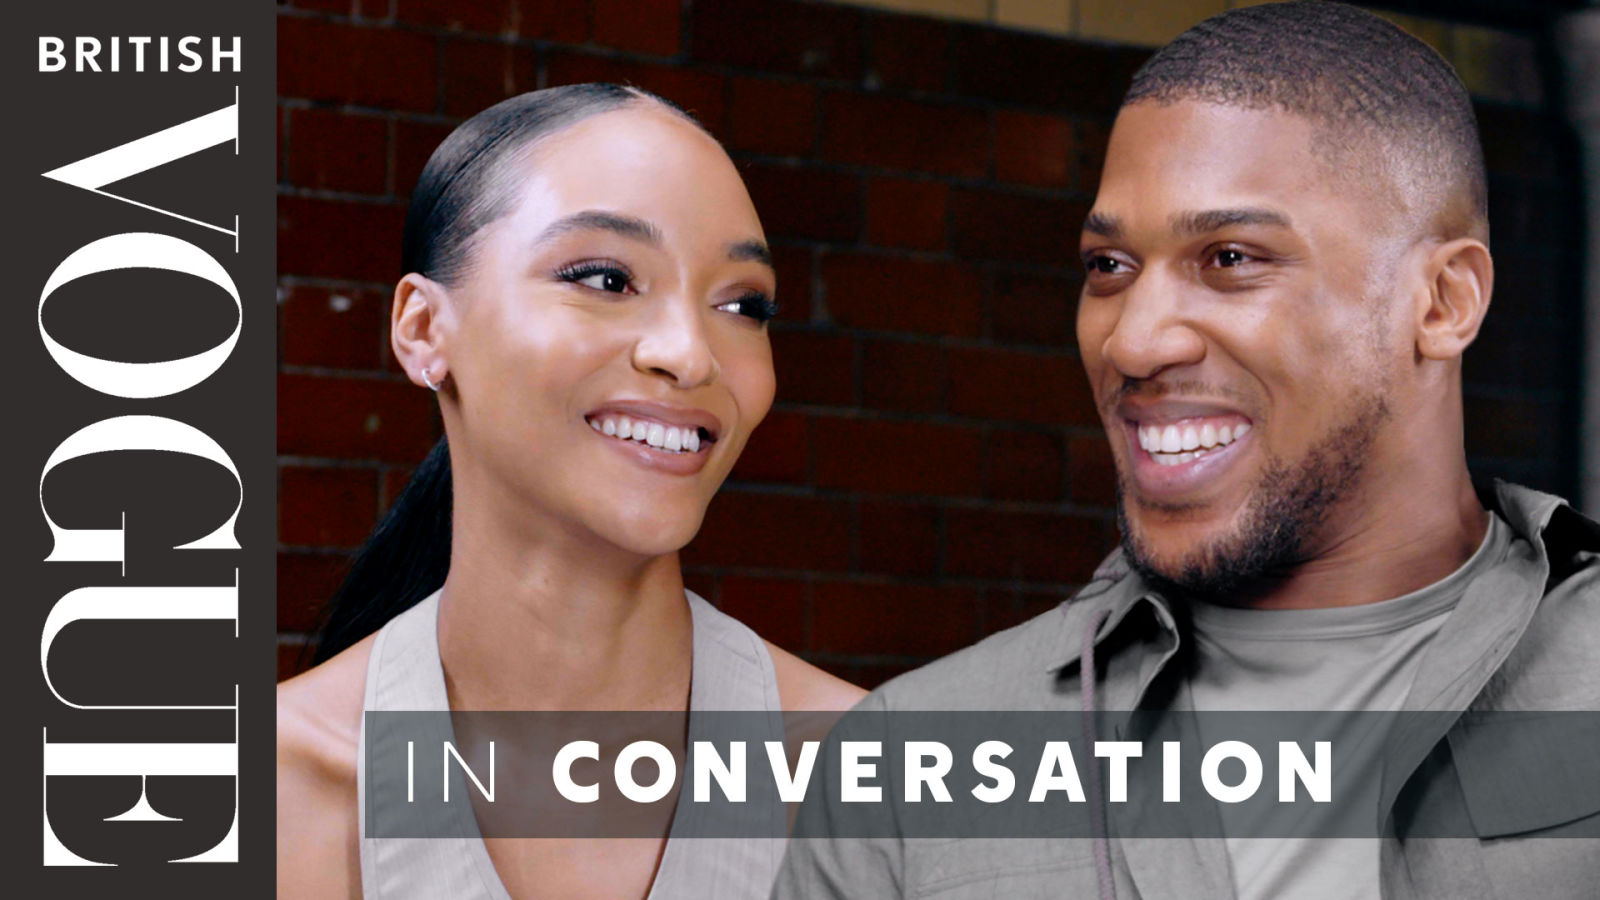 Anthony Joshua Opens Up To Jourdan Dunn About Manners, Male Vulnerability & Being Mentally Fit